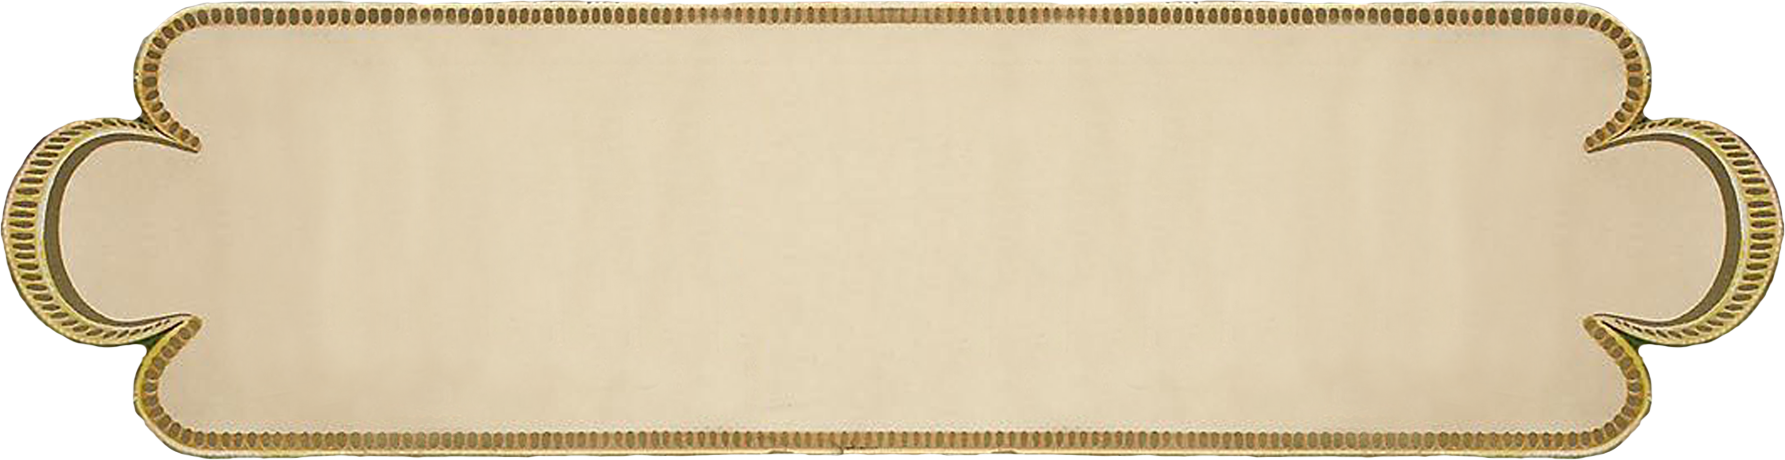 label frames png - photo #28